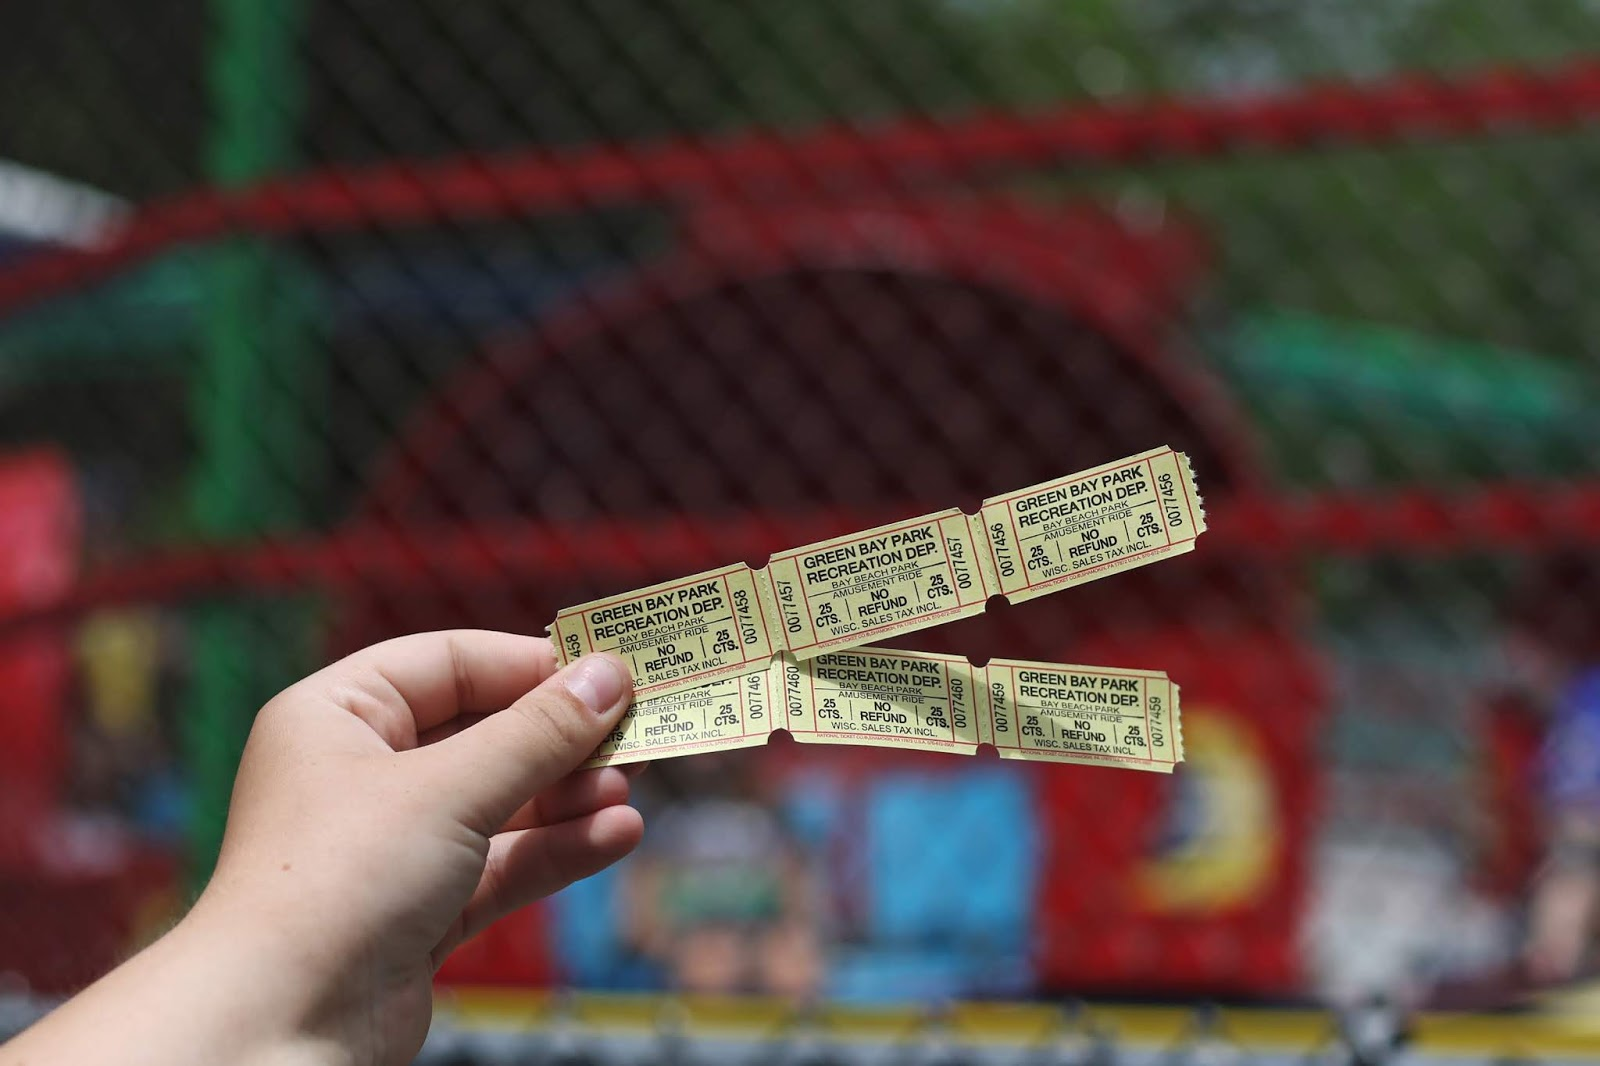 carnival tickets, tilt-a-whirl tickets, blog, travel blog, Wisconsin summer fun, explore Wisconsin, Zippin Pippin', wood roller coaster, cotton candy, theme park